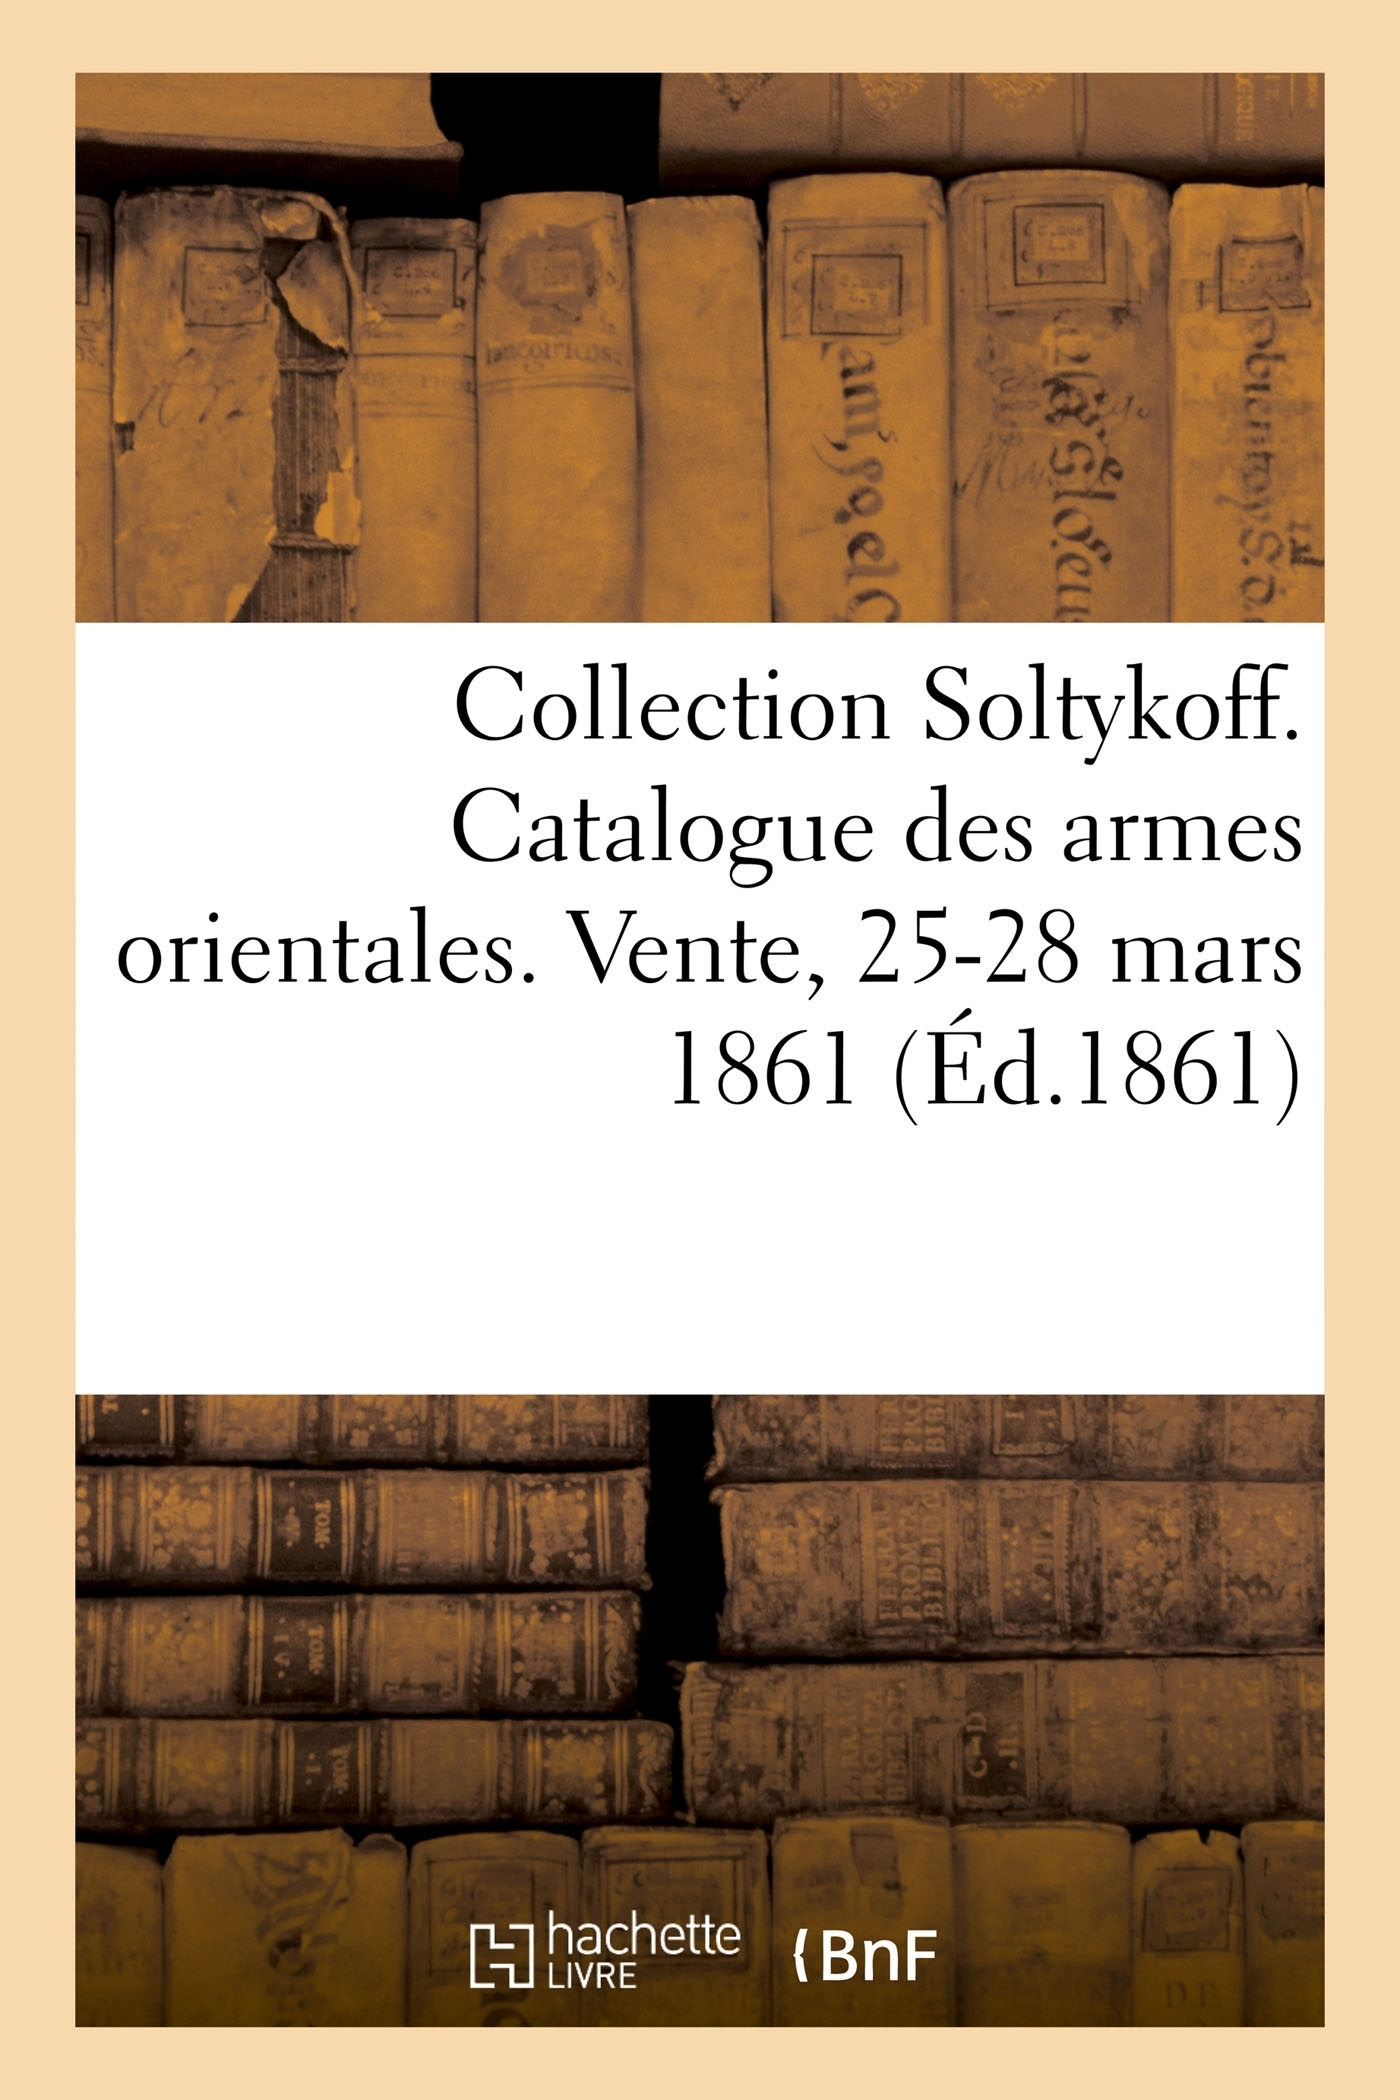 COLLECTION SOLTYKOFF. CATALOGUE DES ARMES ORIENTALES. VENTE, 25-28 MARS 1861